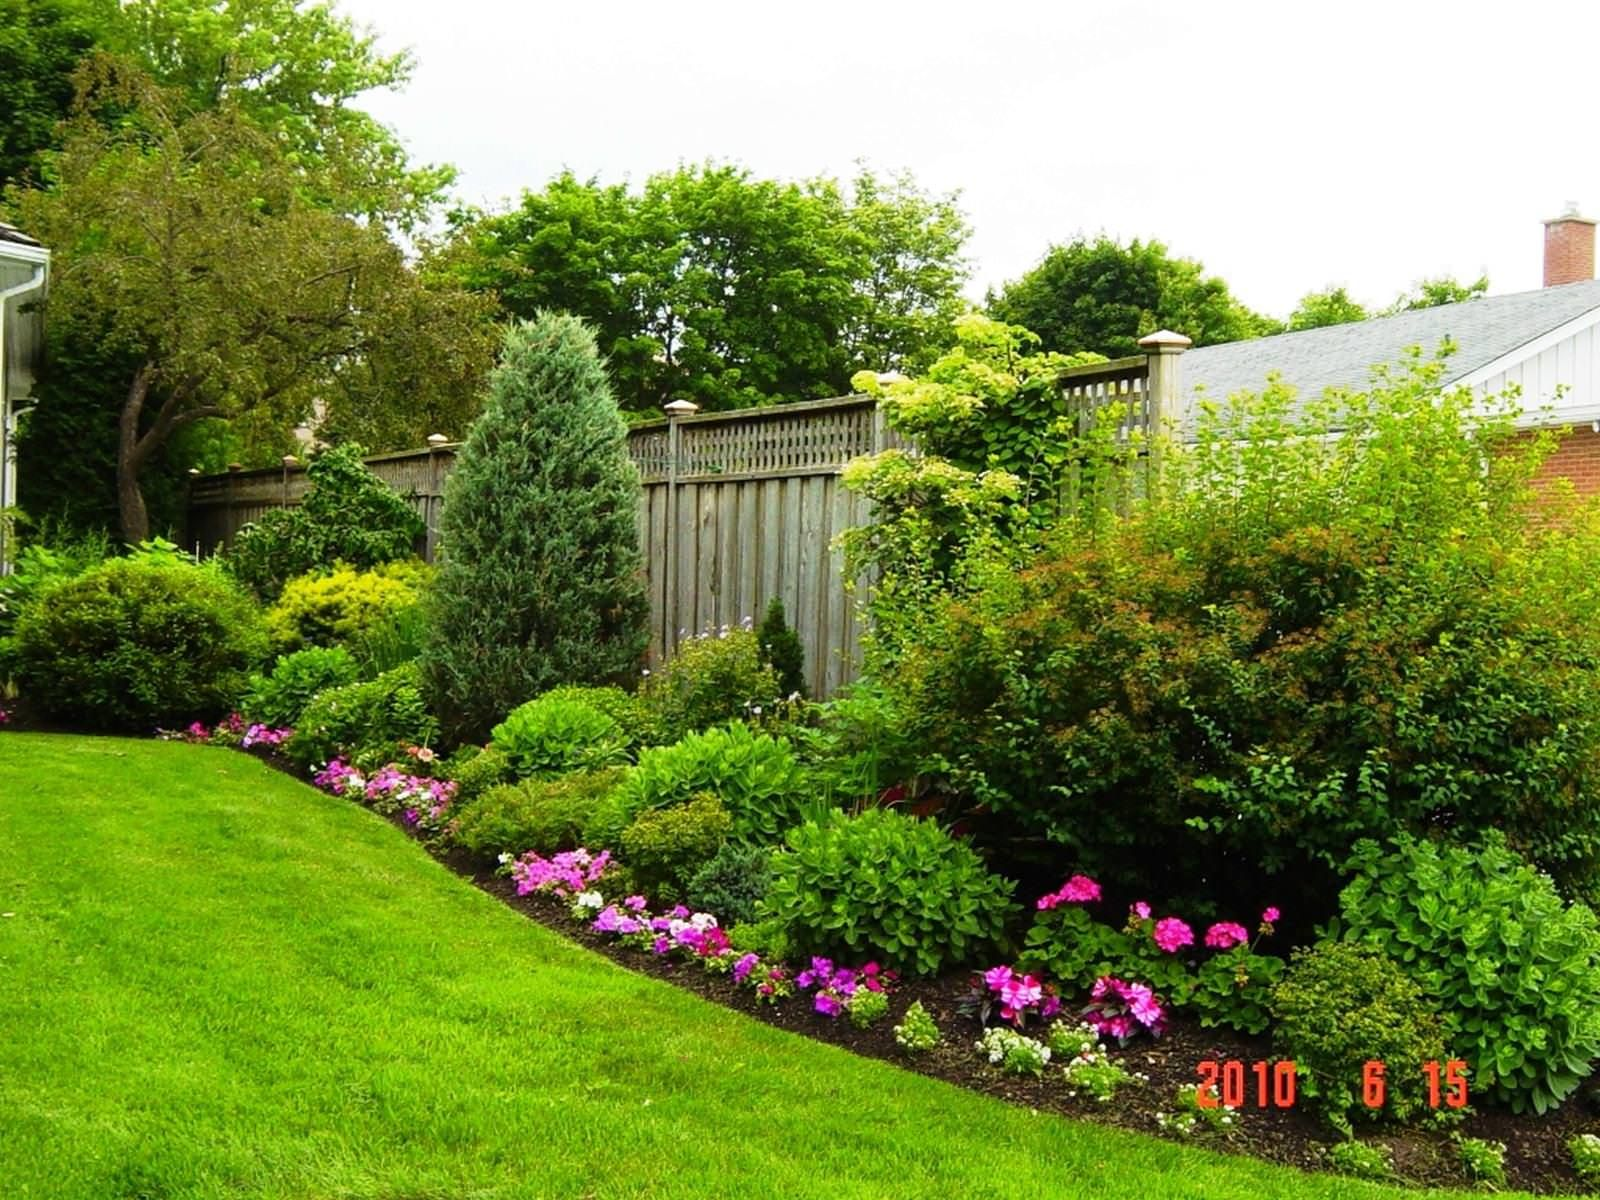 Flower garden ideas for small yards - Tips On Build Small Backyard Landscaping Ideas Landscaping Ideas For Small Yards With Grass For